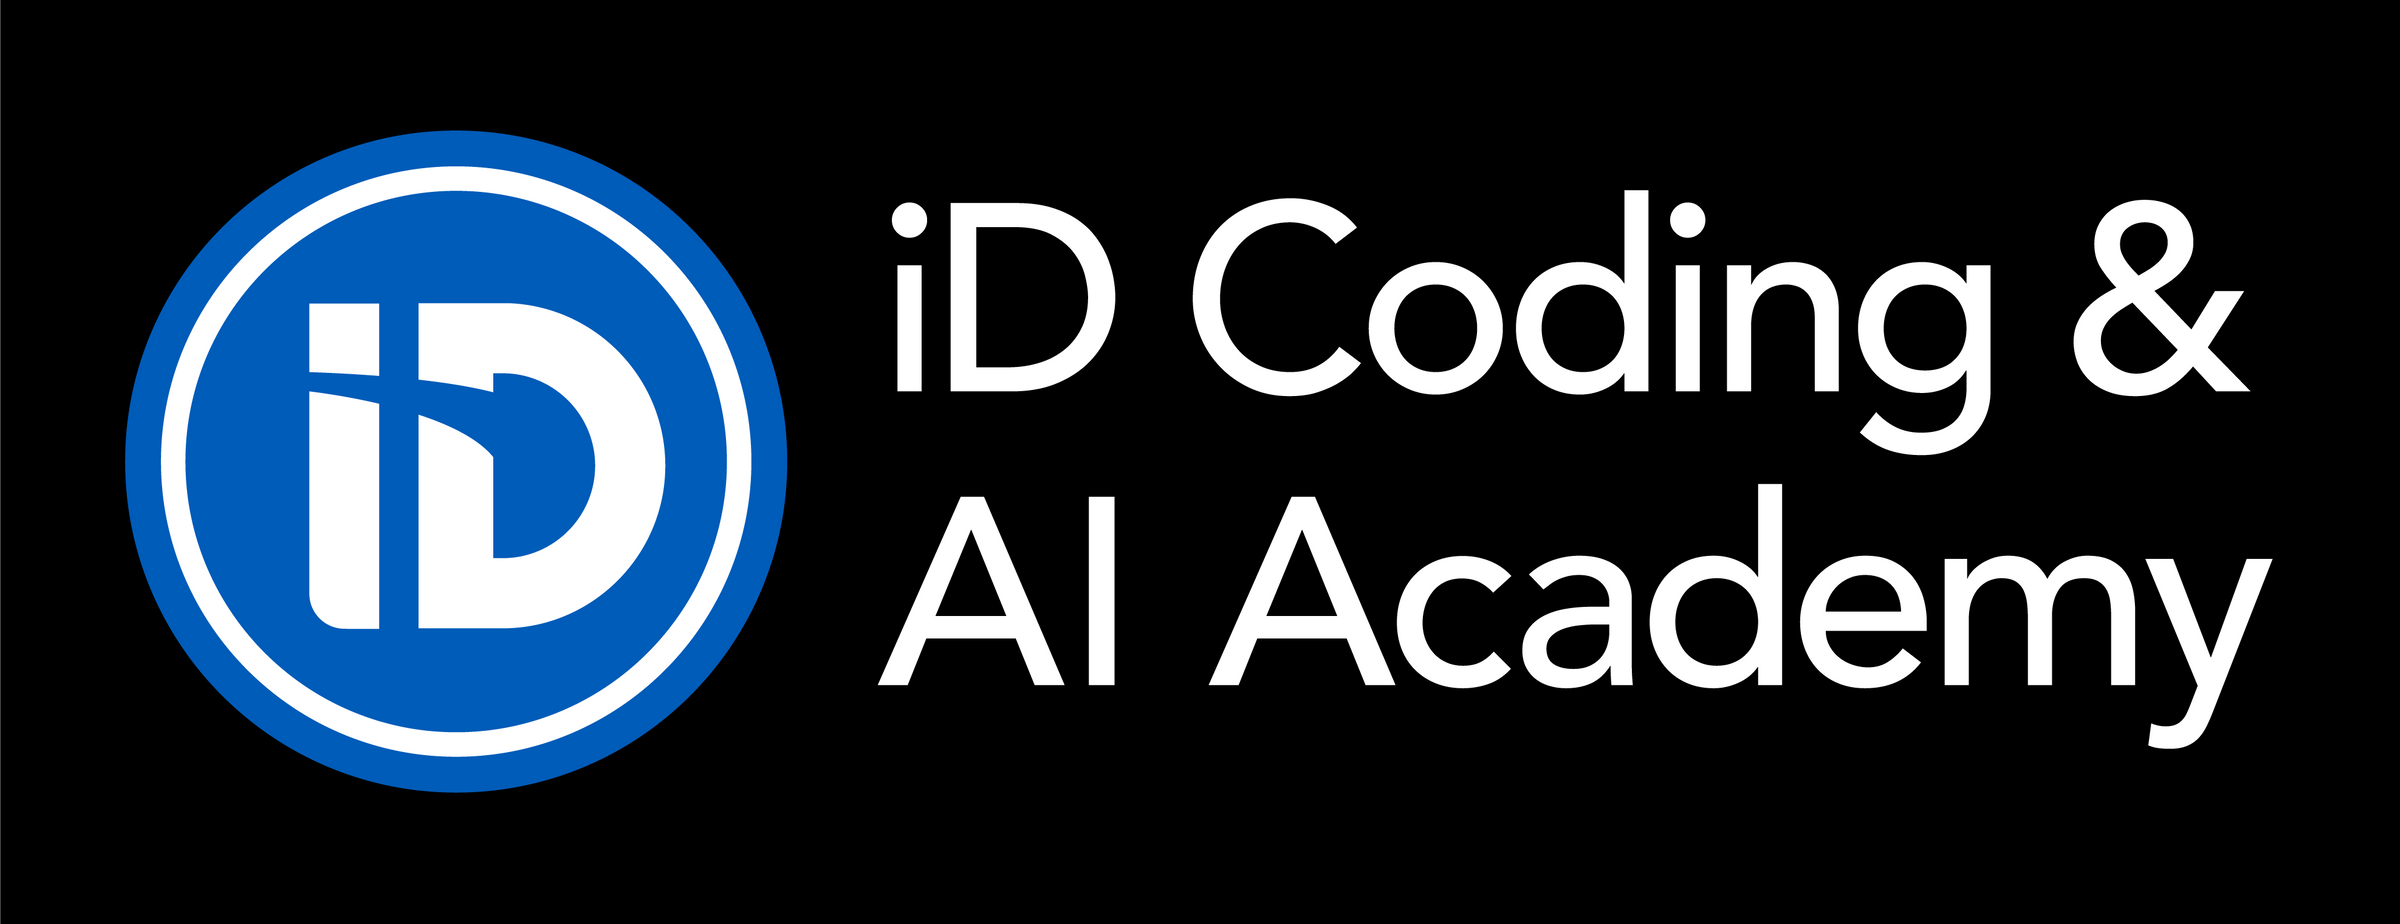 iD Coding & AI Academy for Teens - Held at UC Berkeley